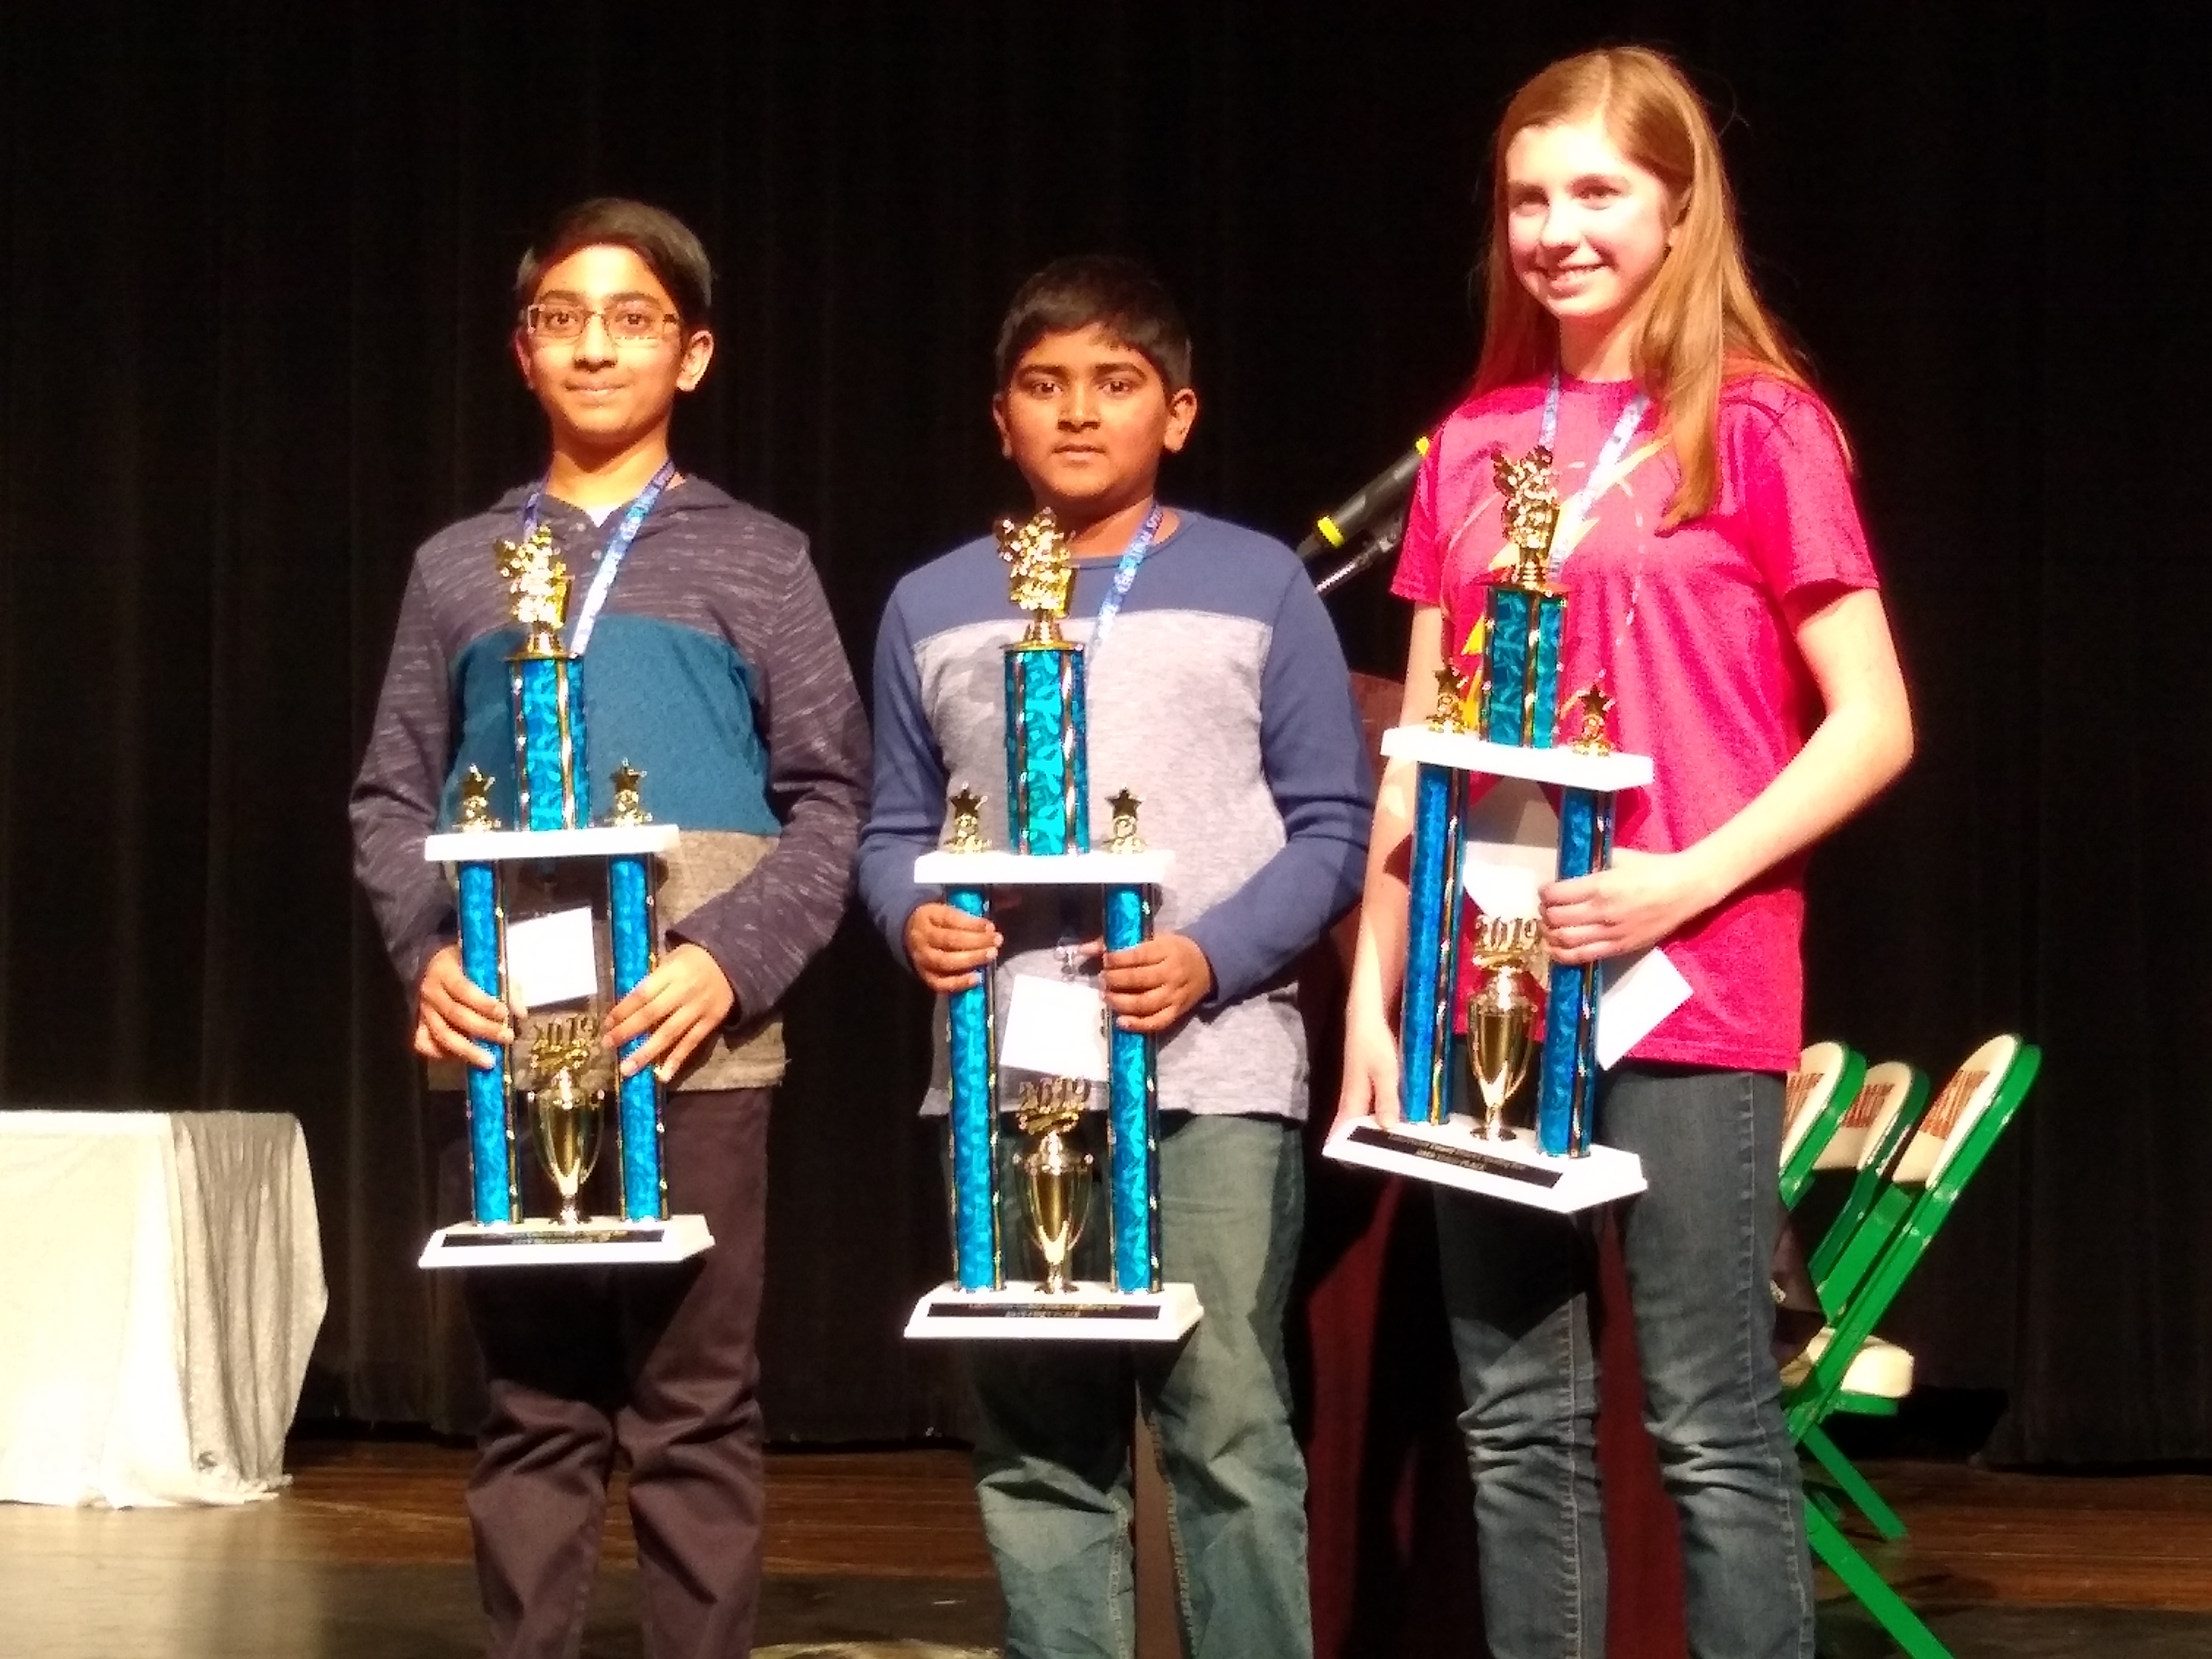 Grimmer 8th grade student, Nachiket Magesh, earned 2nd place at the Scripps Spelling Bee at the 2/21 local competition. He moves on to the Regional March 14th.